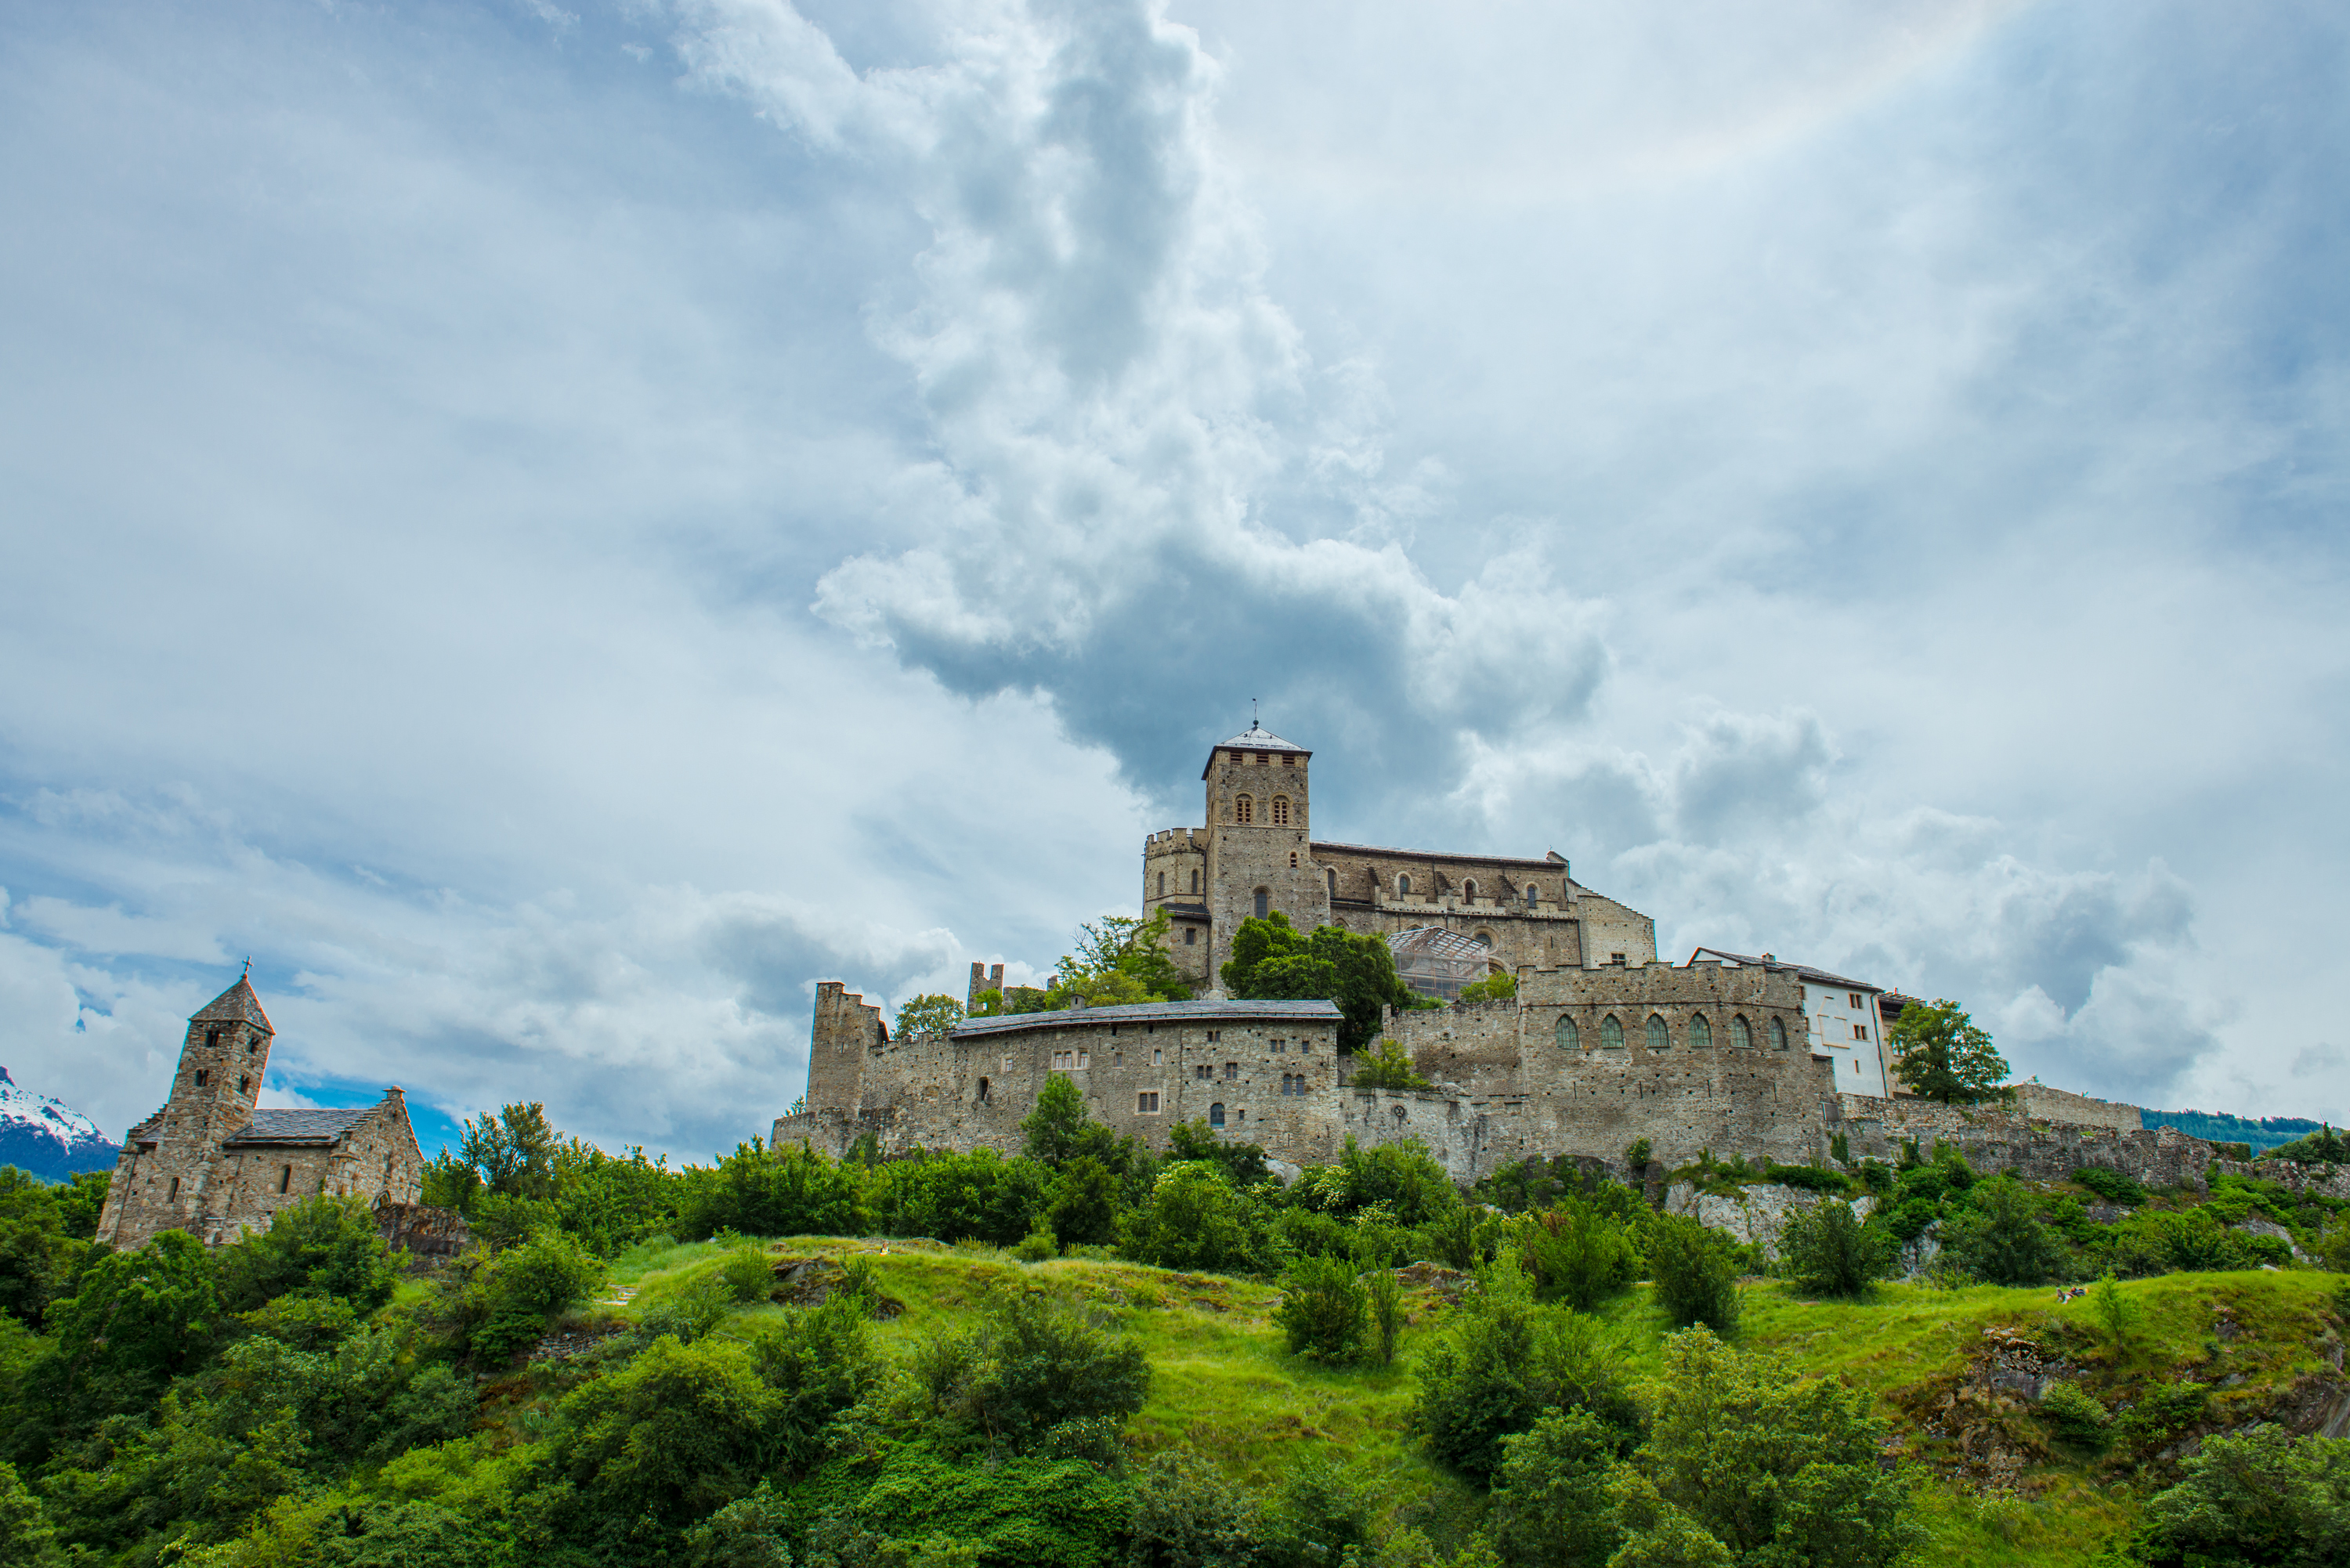 The castles of Valère, Sion, Valais